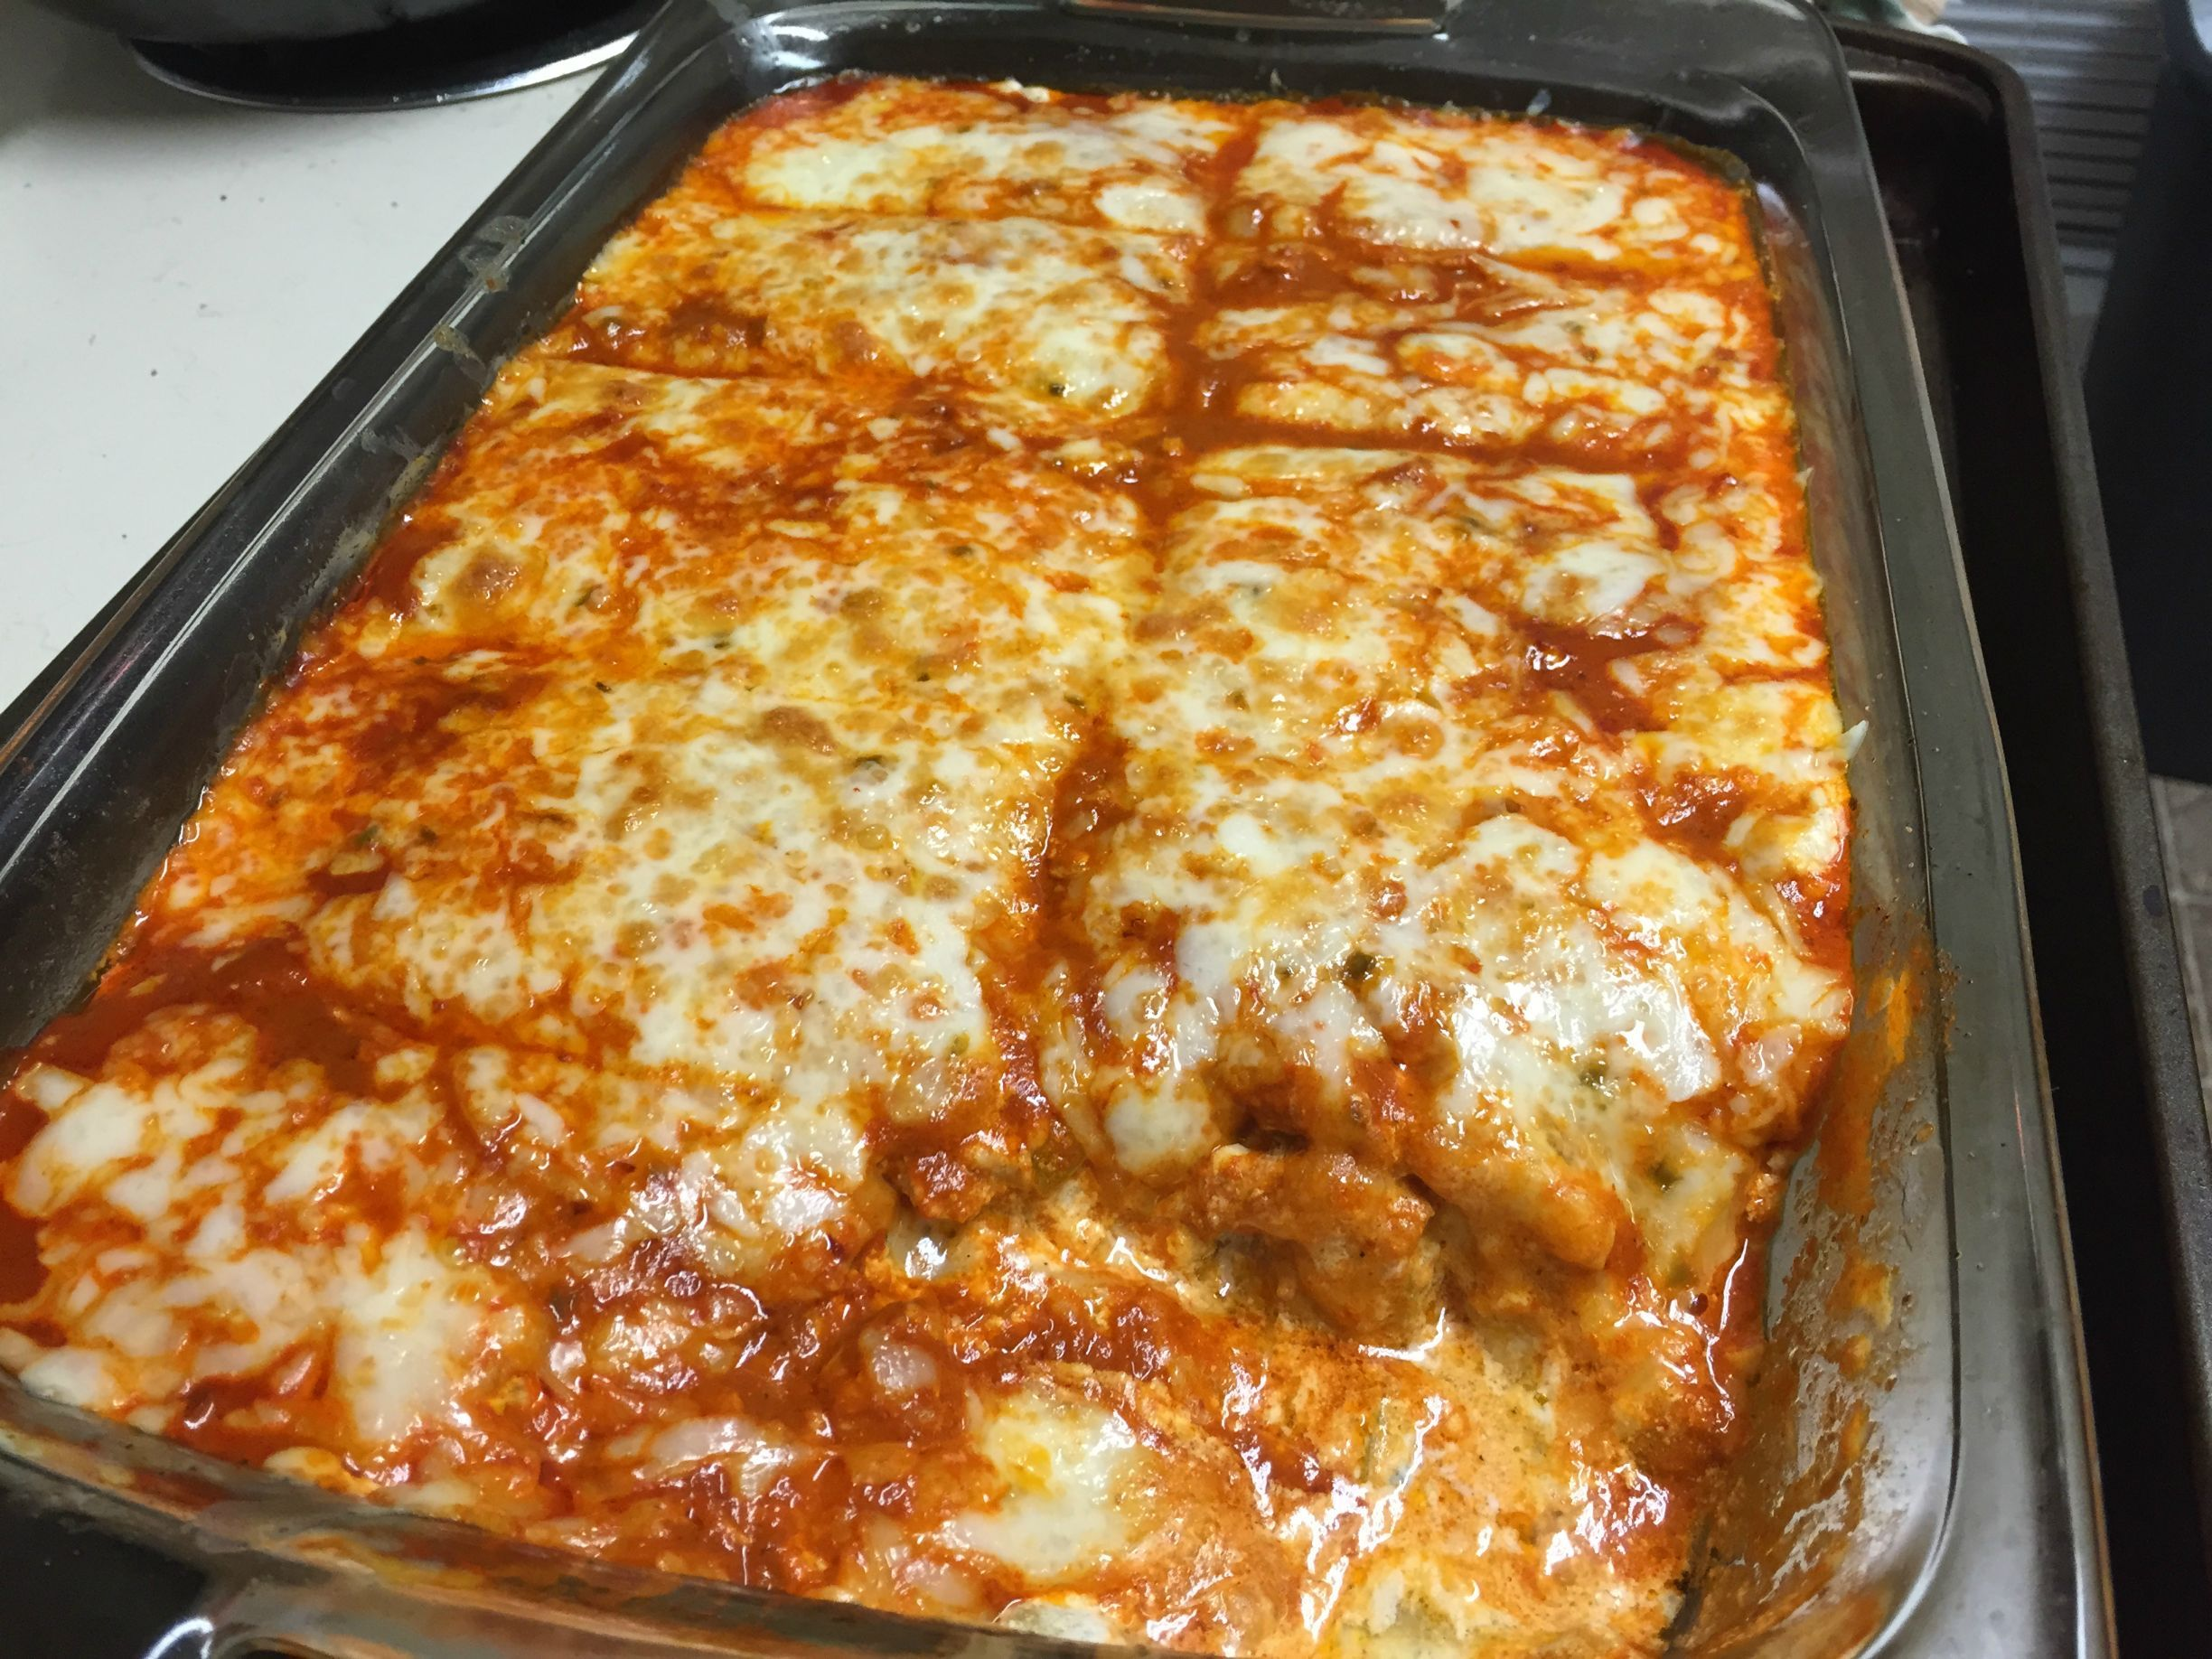 Best 25 Chicken Enchilada Casserole Ideas On Pinterest Chicken Dishes With Rice Recipes With Refried Beans And Enchilada Rice